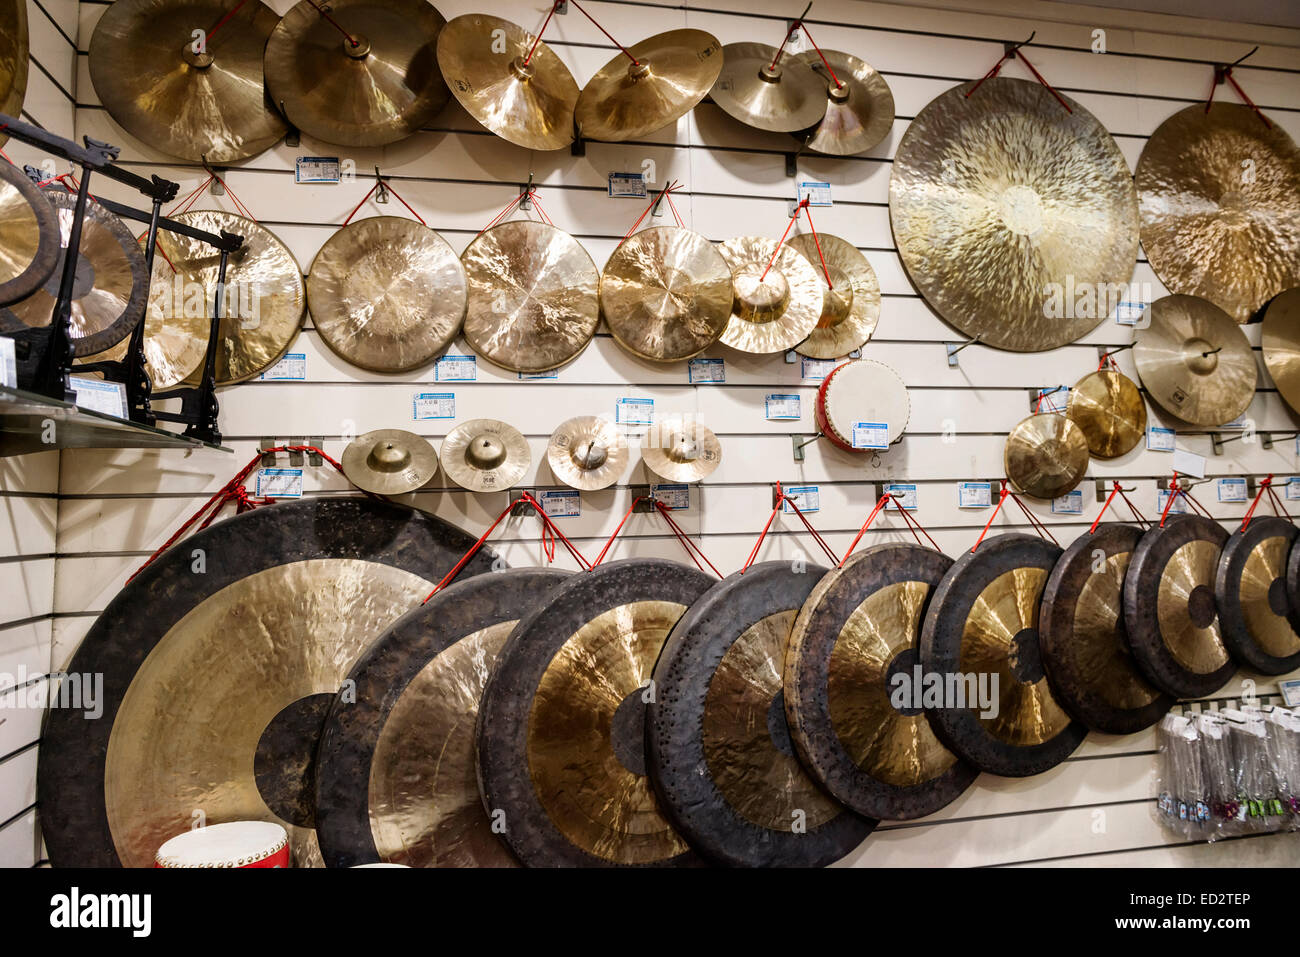 Percussion musical instruments, cymbals and gongs on display at a store in Shanghai, China - Stock Image